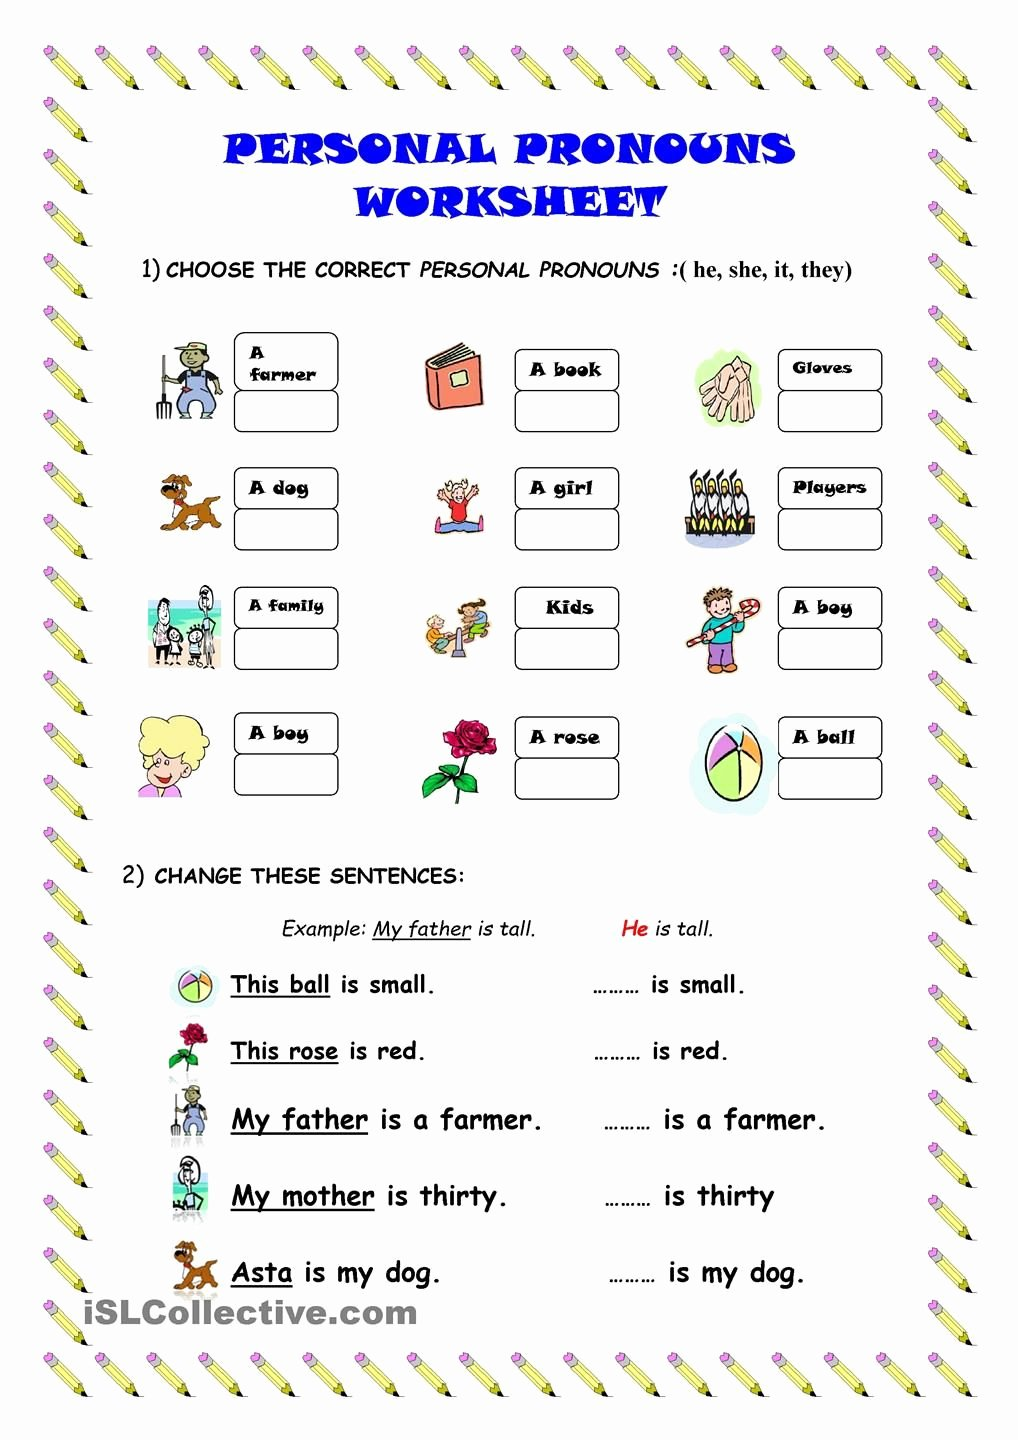 Personal Pronouns Worksheets for Preschoolers Kids Practice Gaspartutor